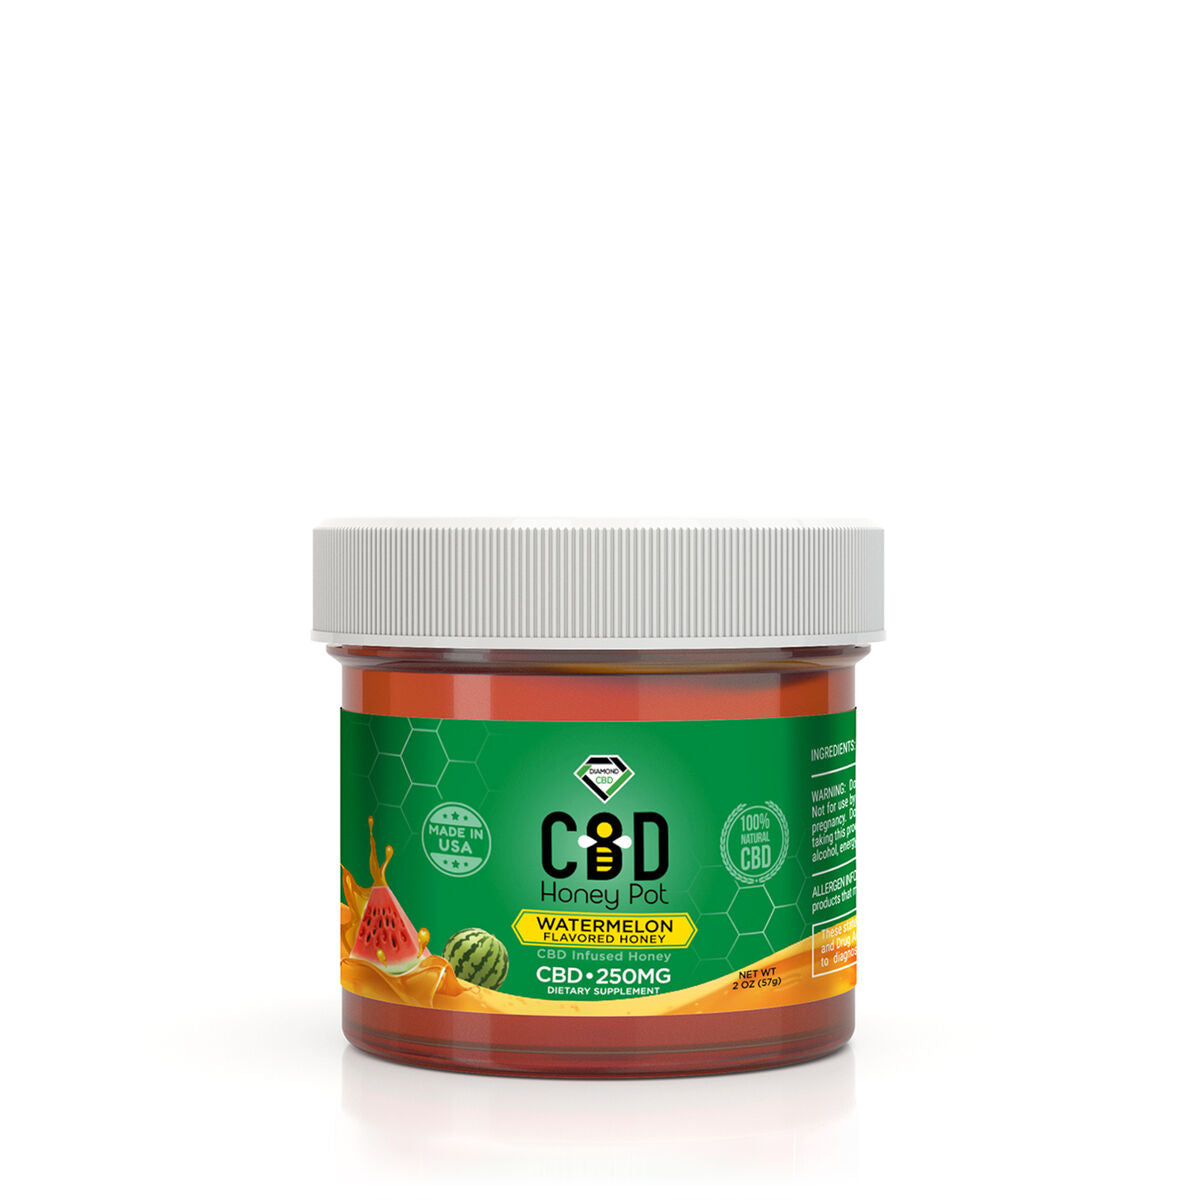 CBD Infused Honey Pot - Watermelon Flavor - 250mg